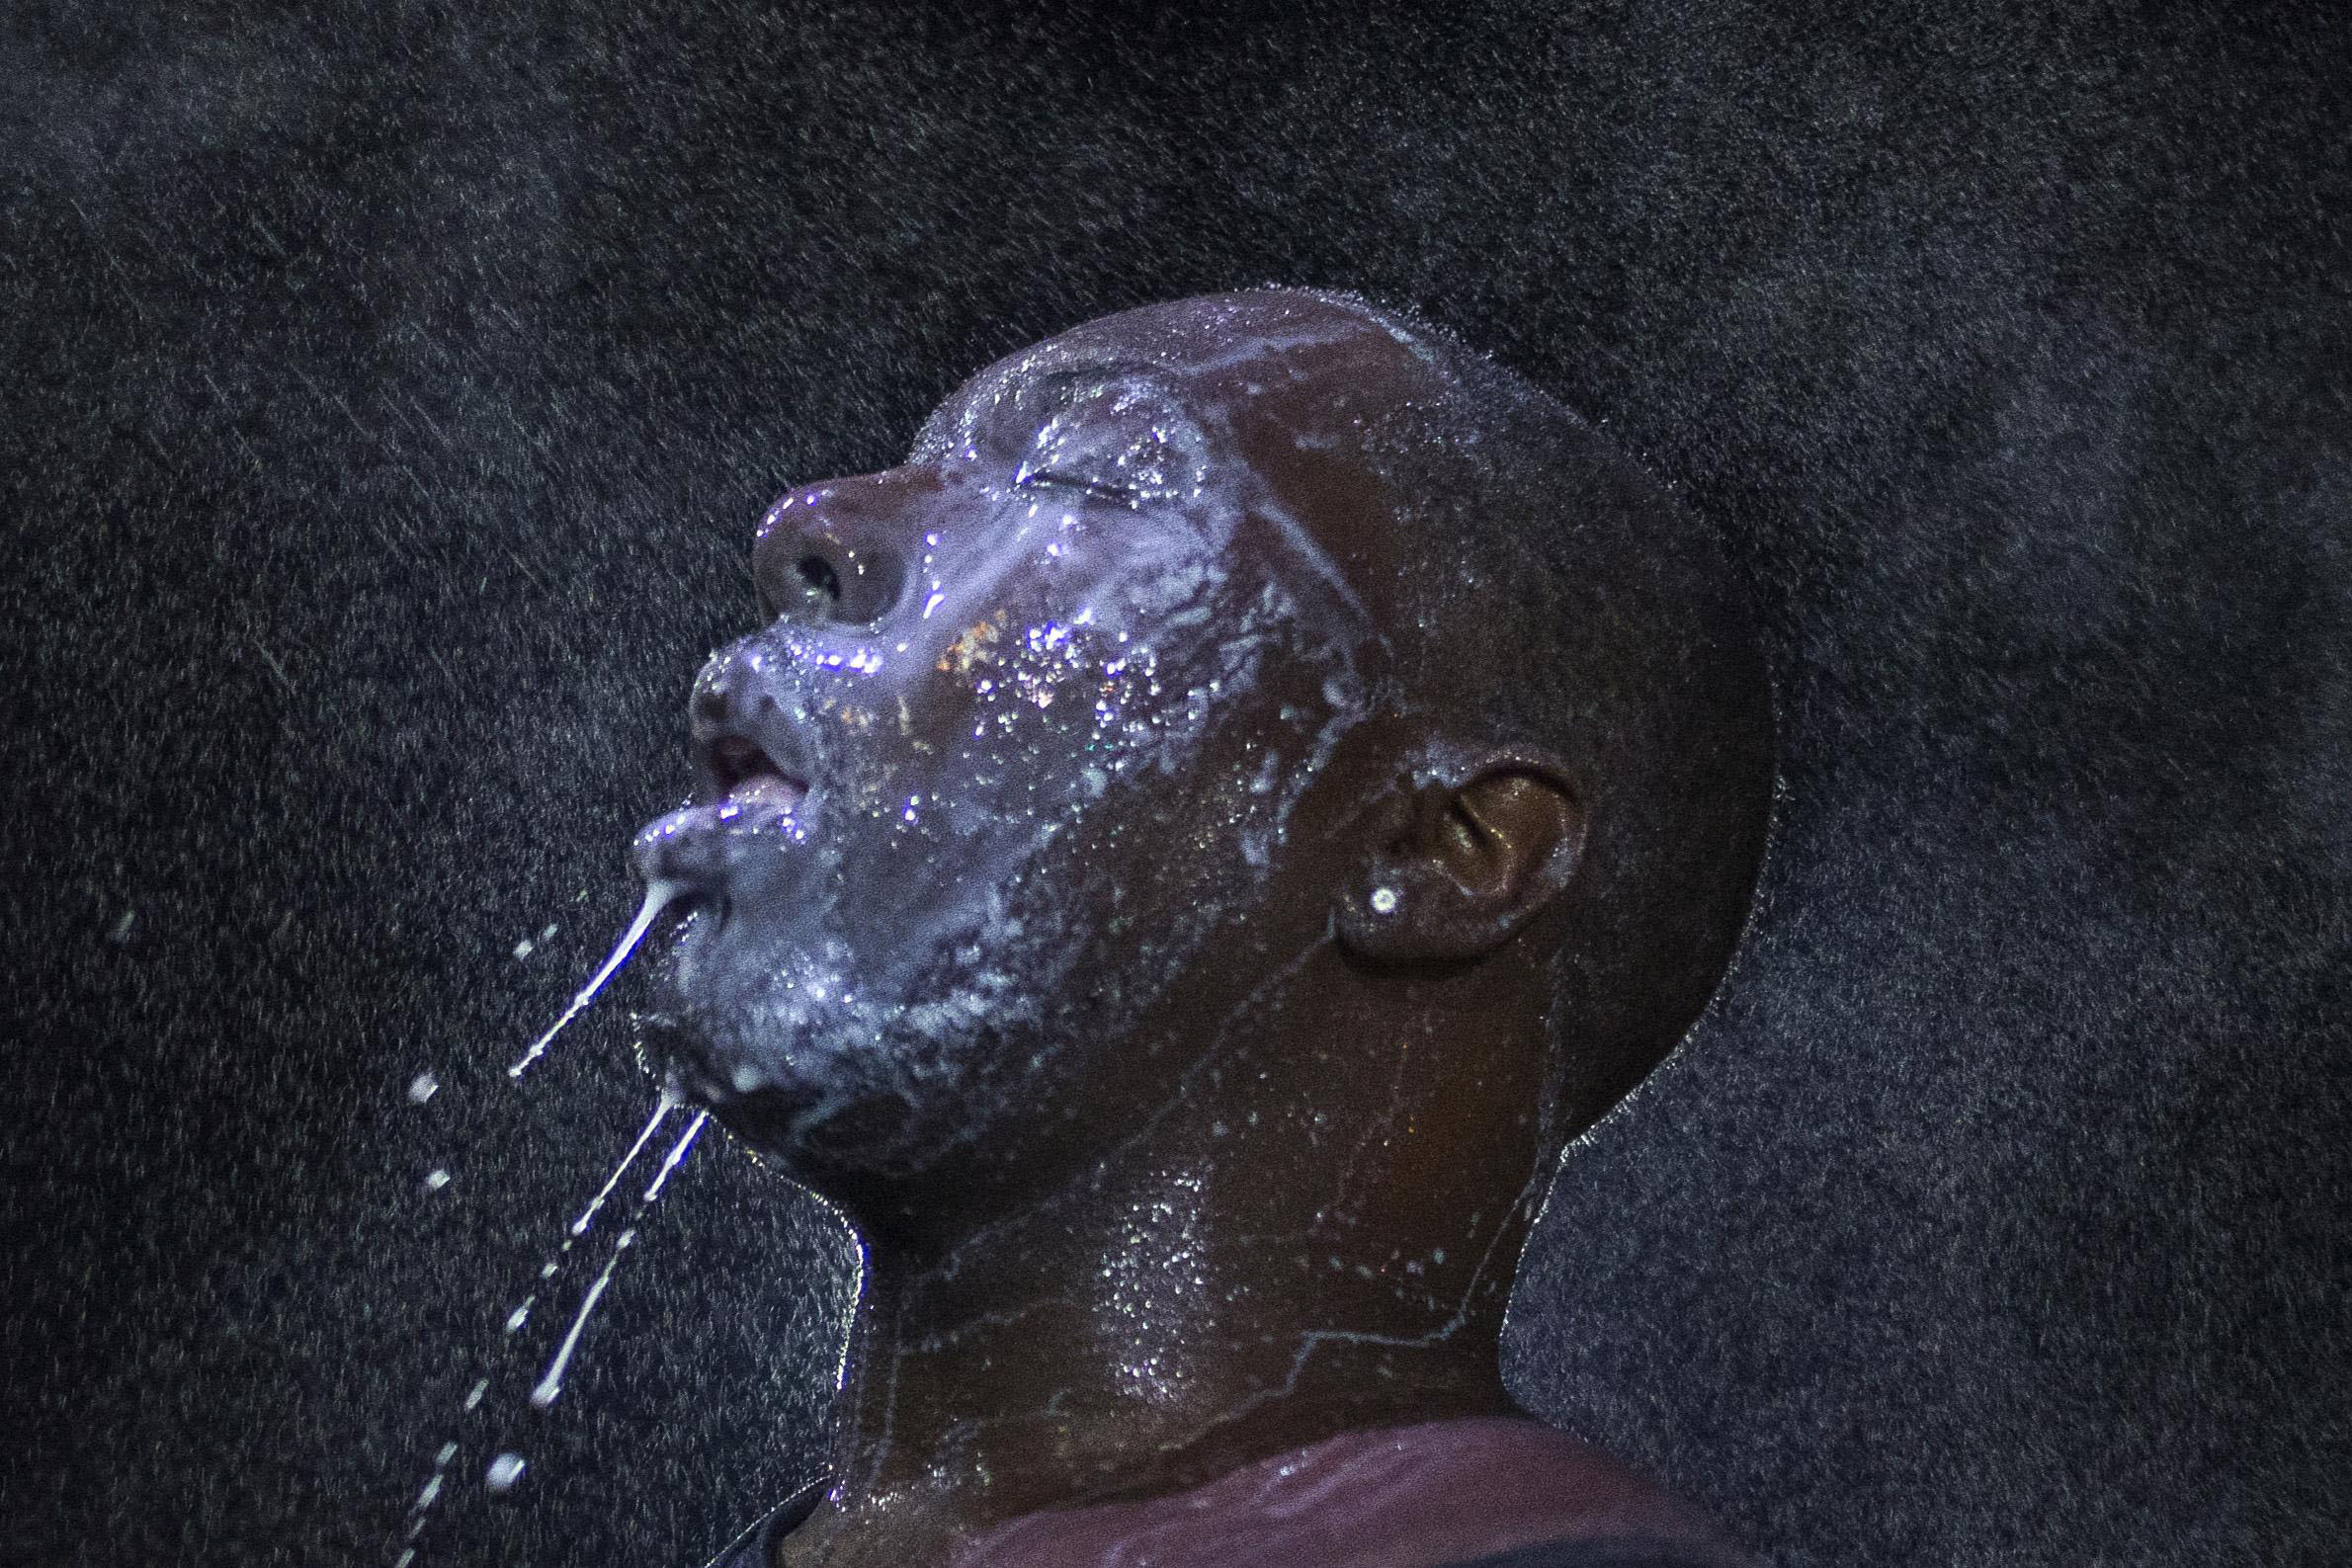 A man is doused with milk and sprayed with mist after his eyes were affected by a chemical irritant used by police attempting to control riots in Ferguson, Missouri, on Aug. 20.